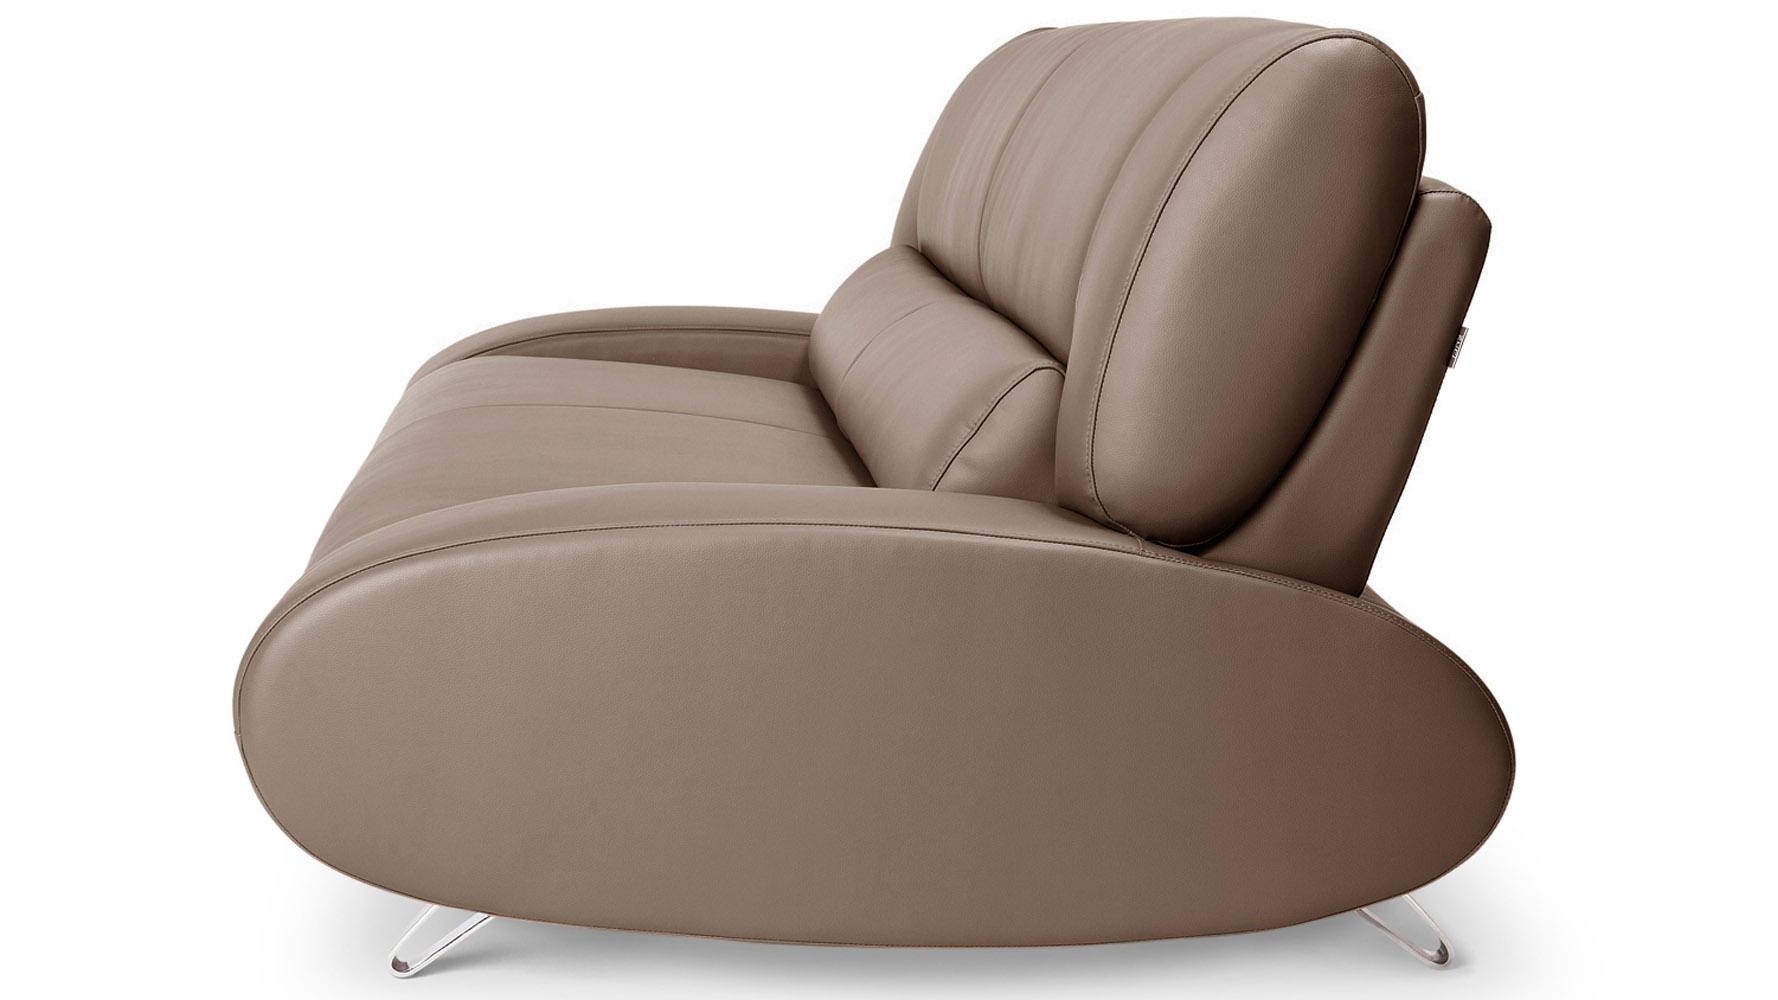 Brown Aspen Leather Sofa Set With Loveseat And Chair | Zuri Furniture Inside Aspen Leather Sofas (Image 10 of 20)